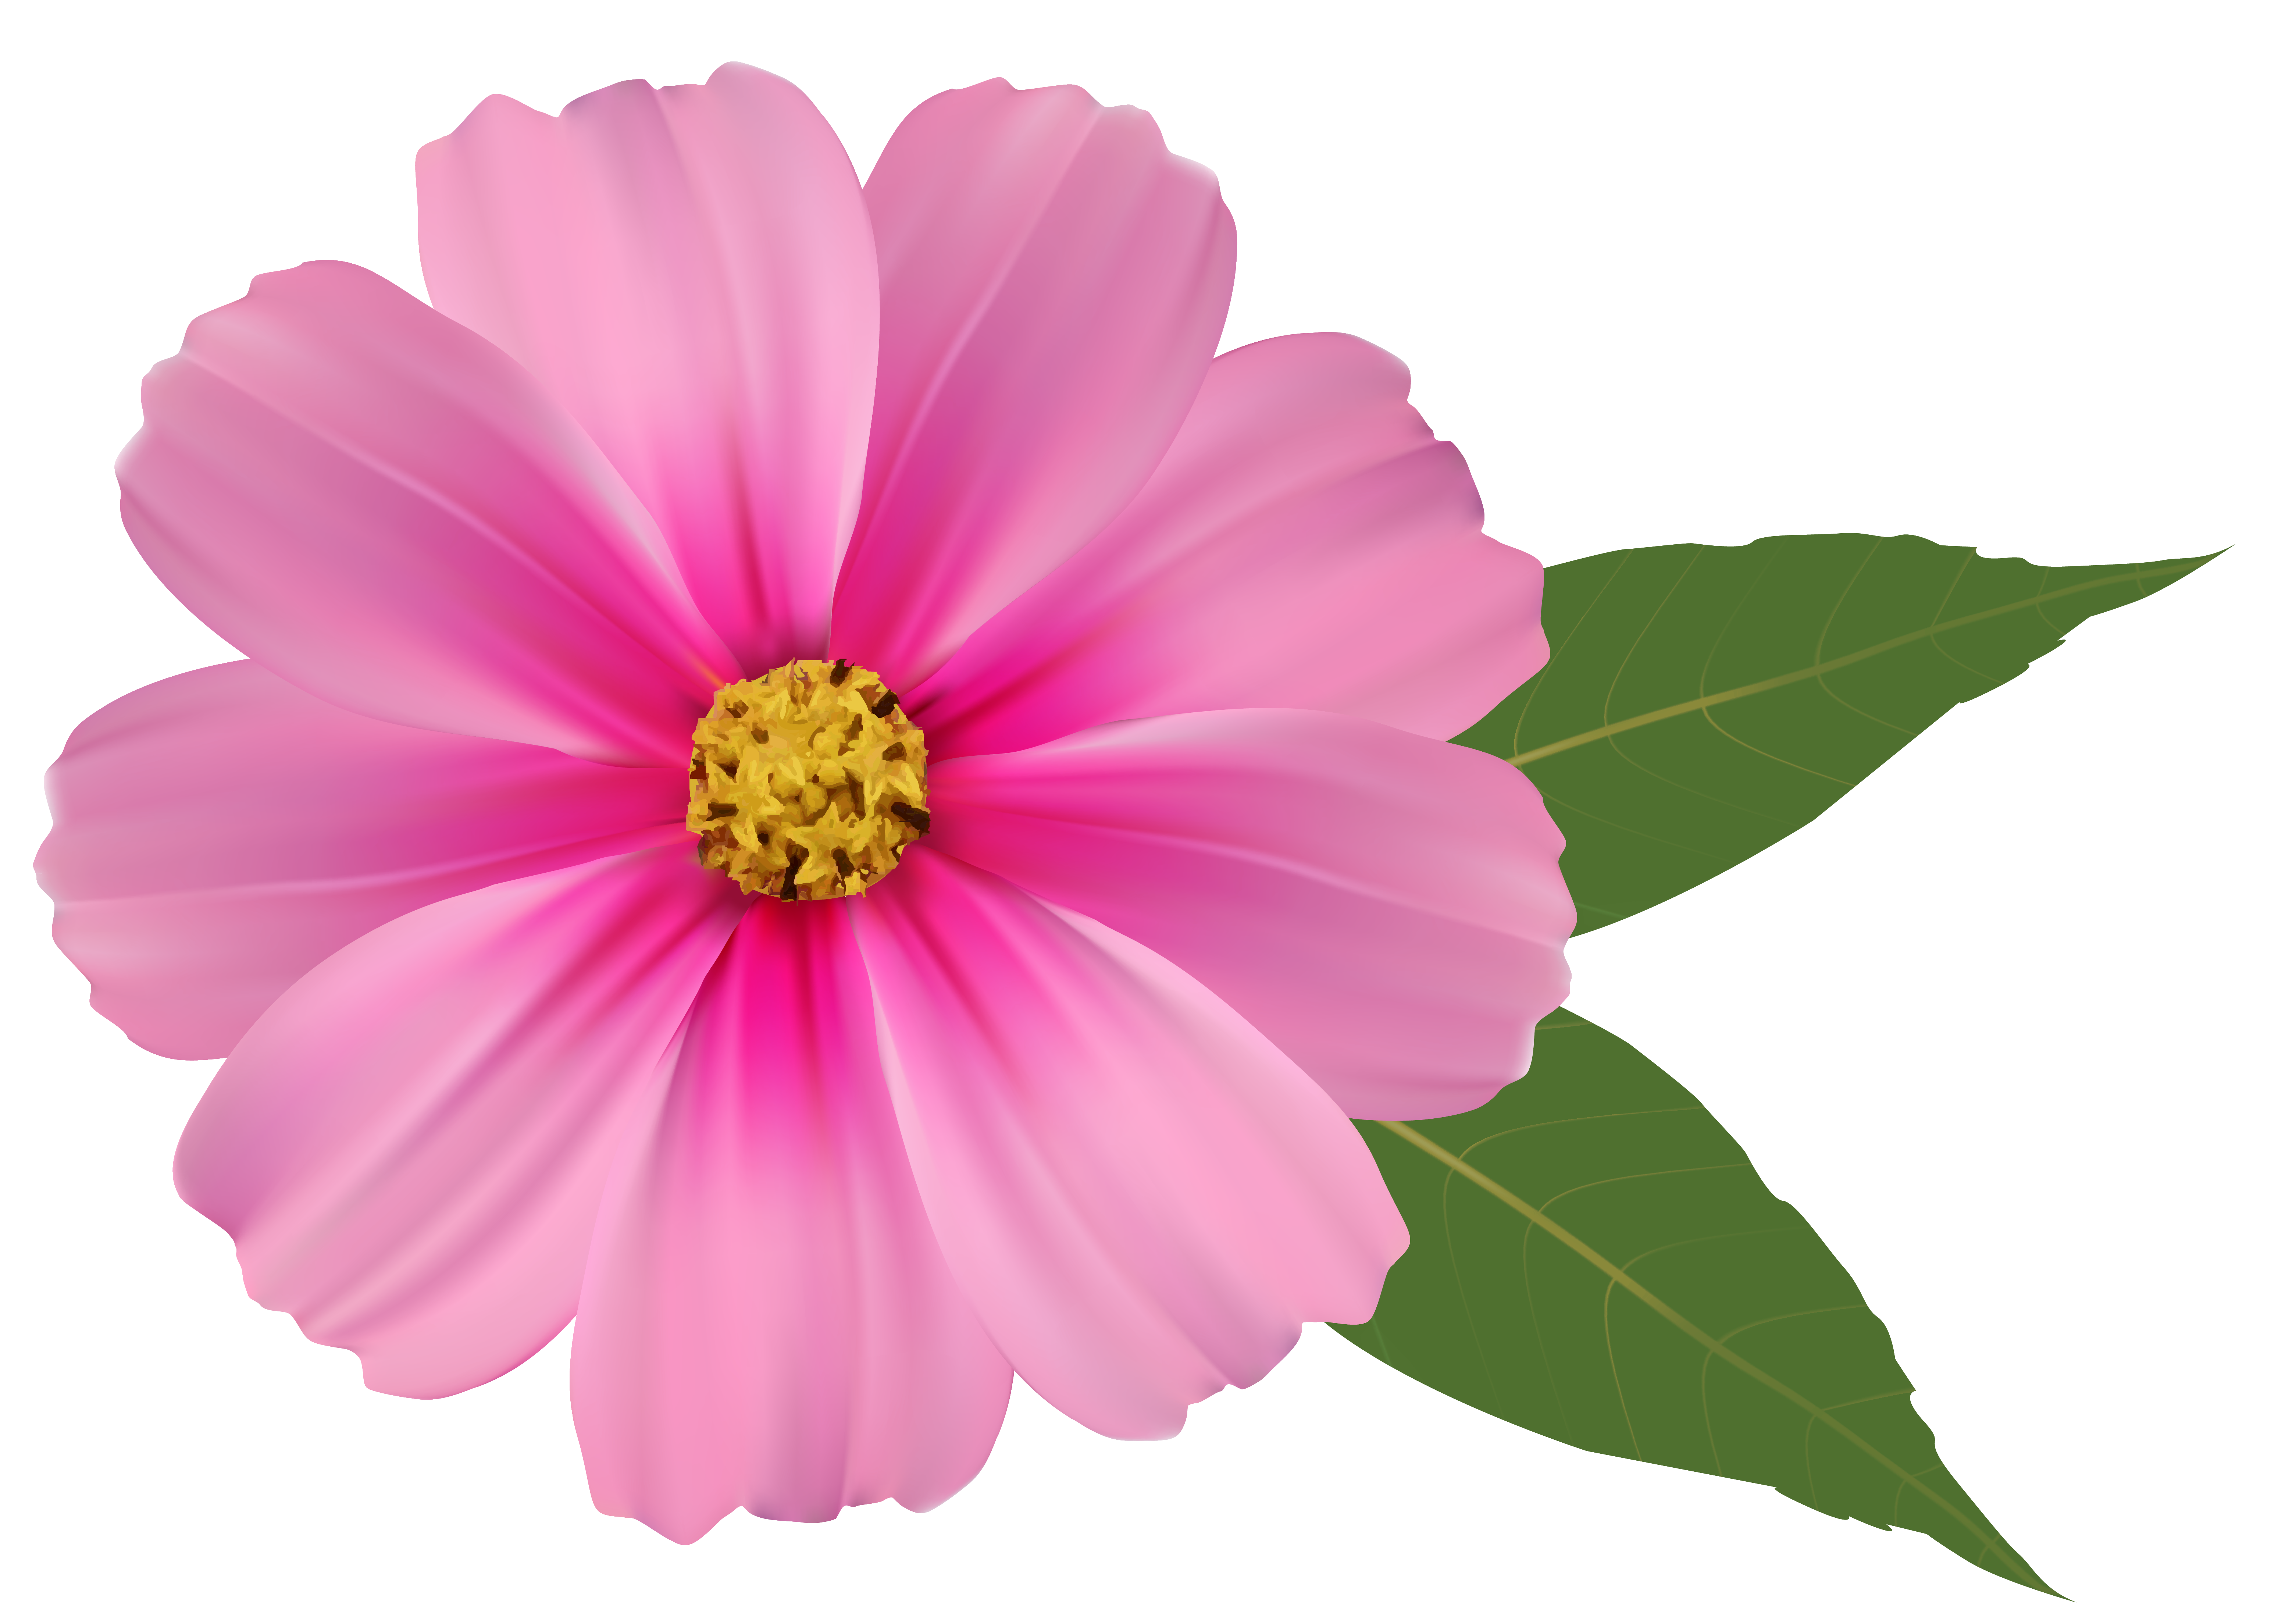 Pink flowers png. Flower image clipart gallery